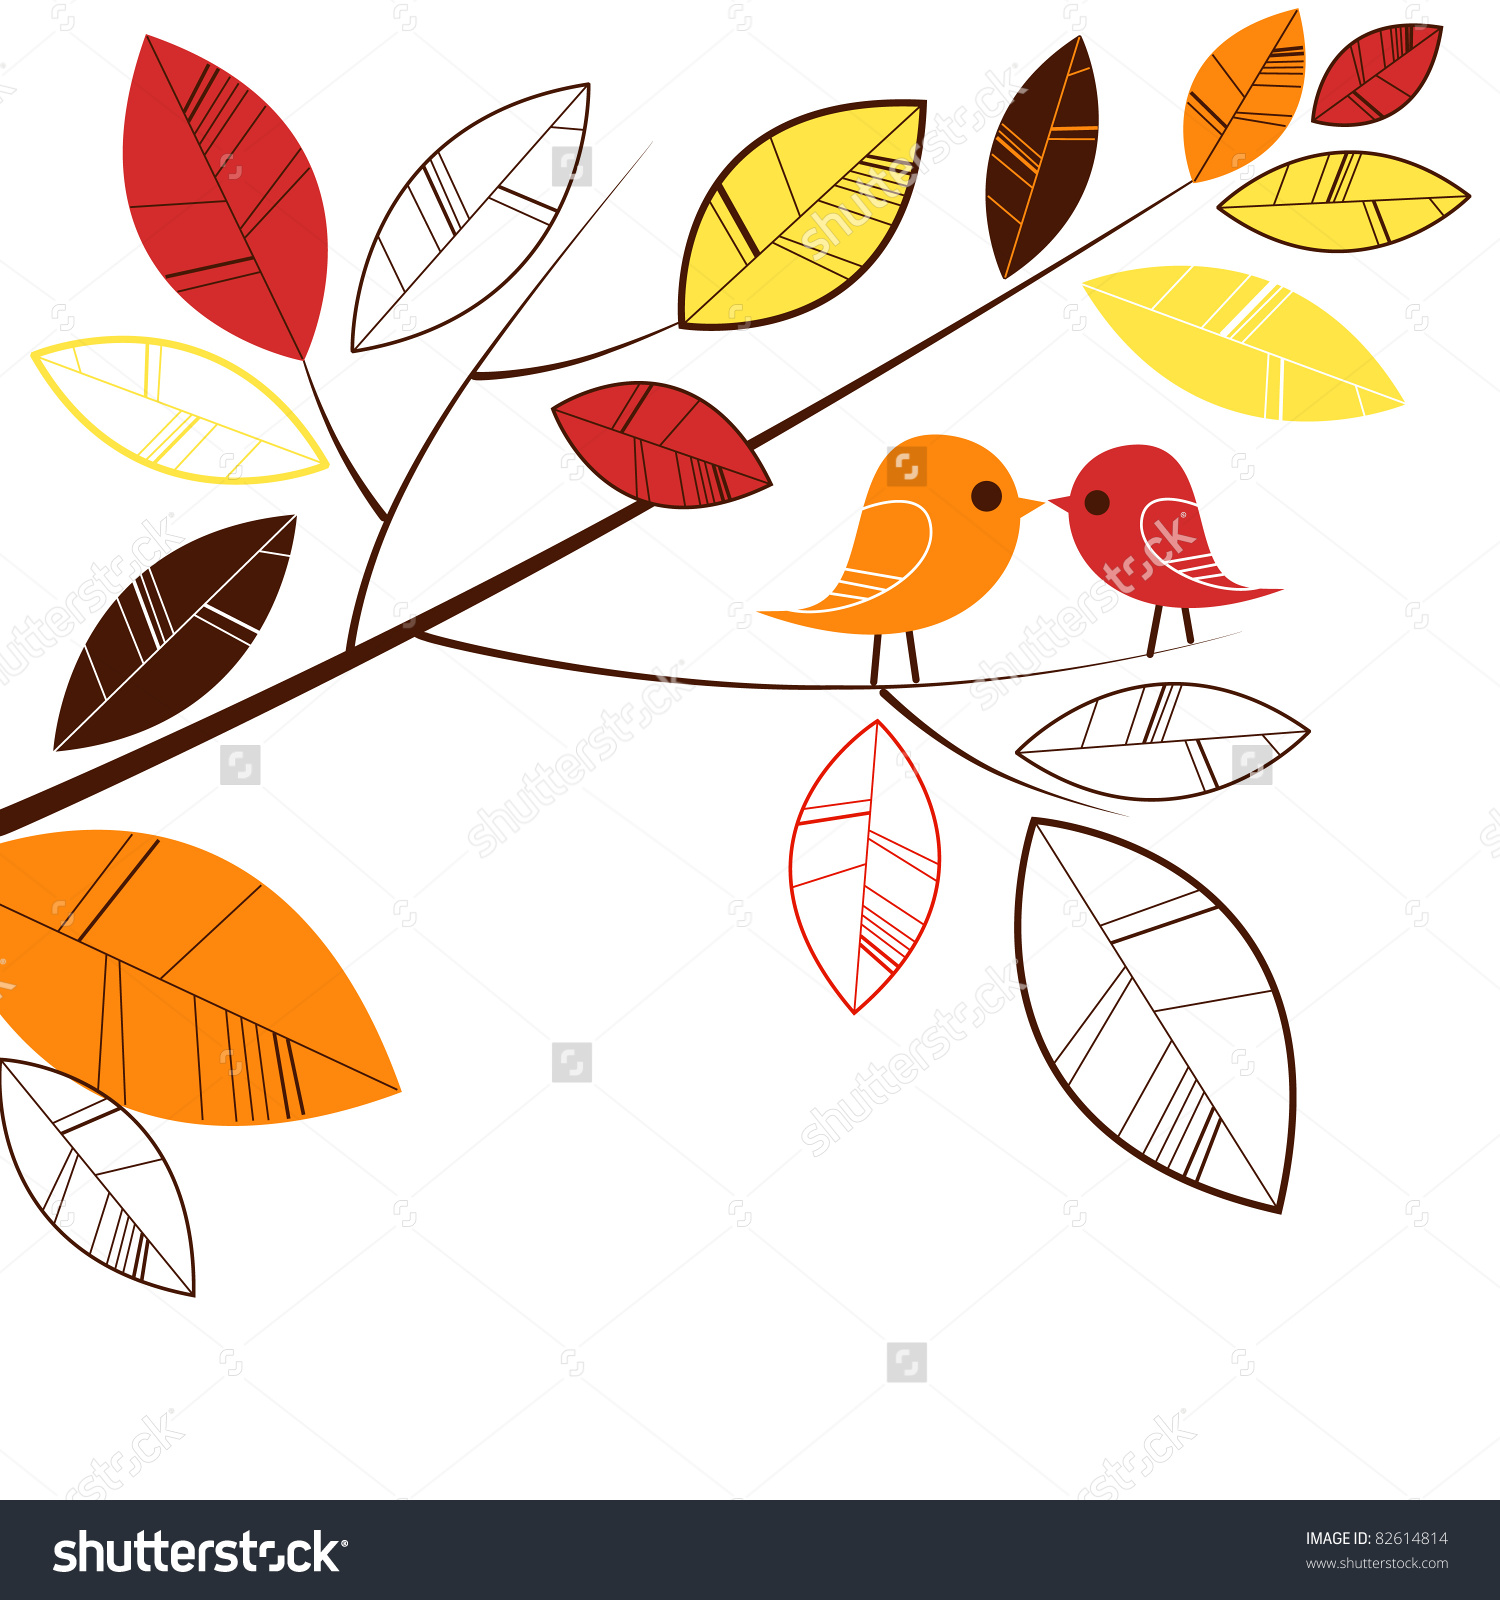 Autumn Leaves And Two Birds Kissing Stock Vector Illustration.